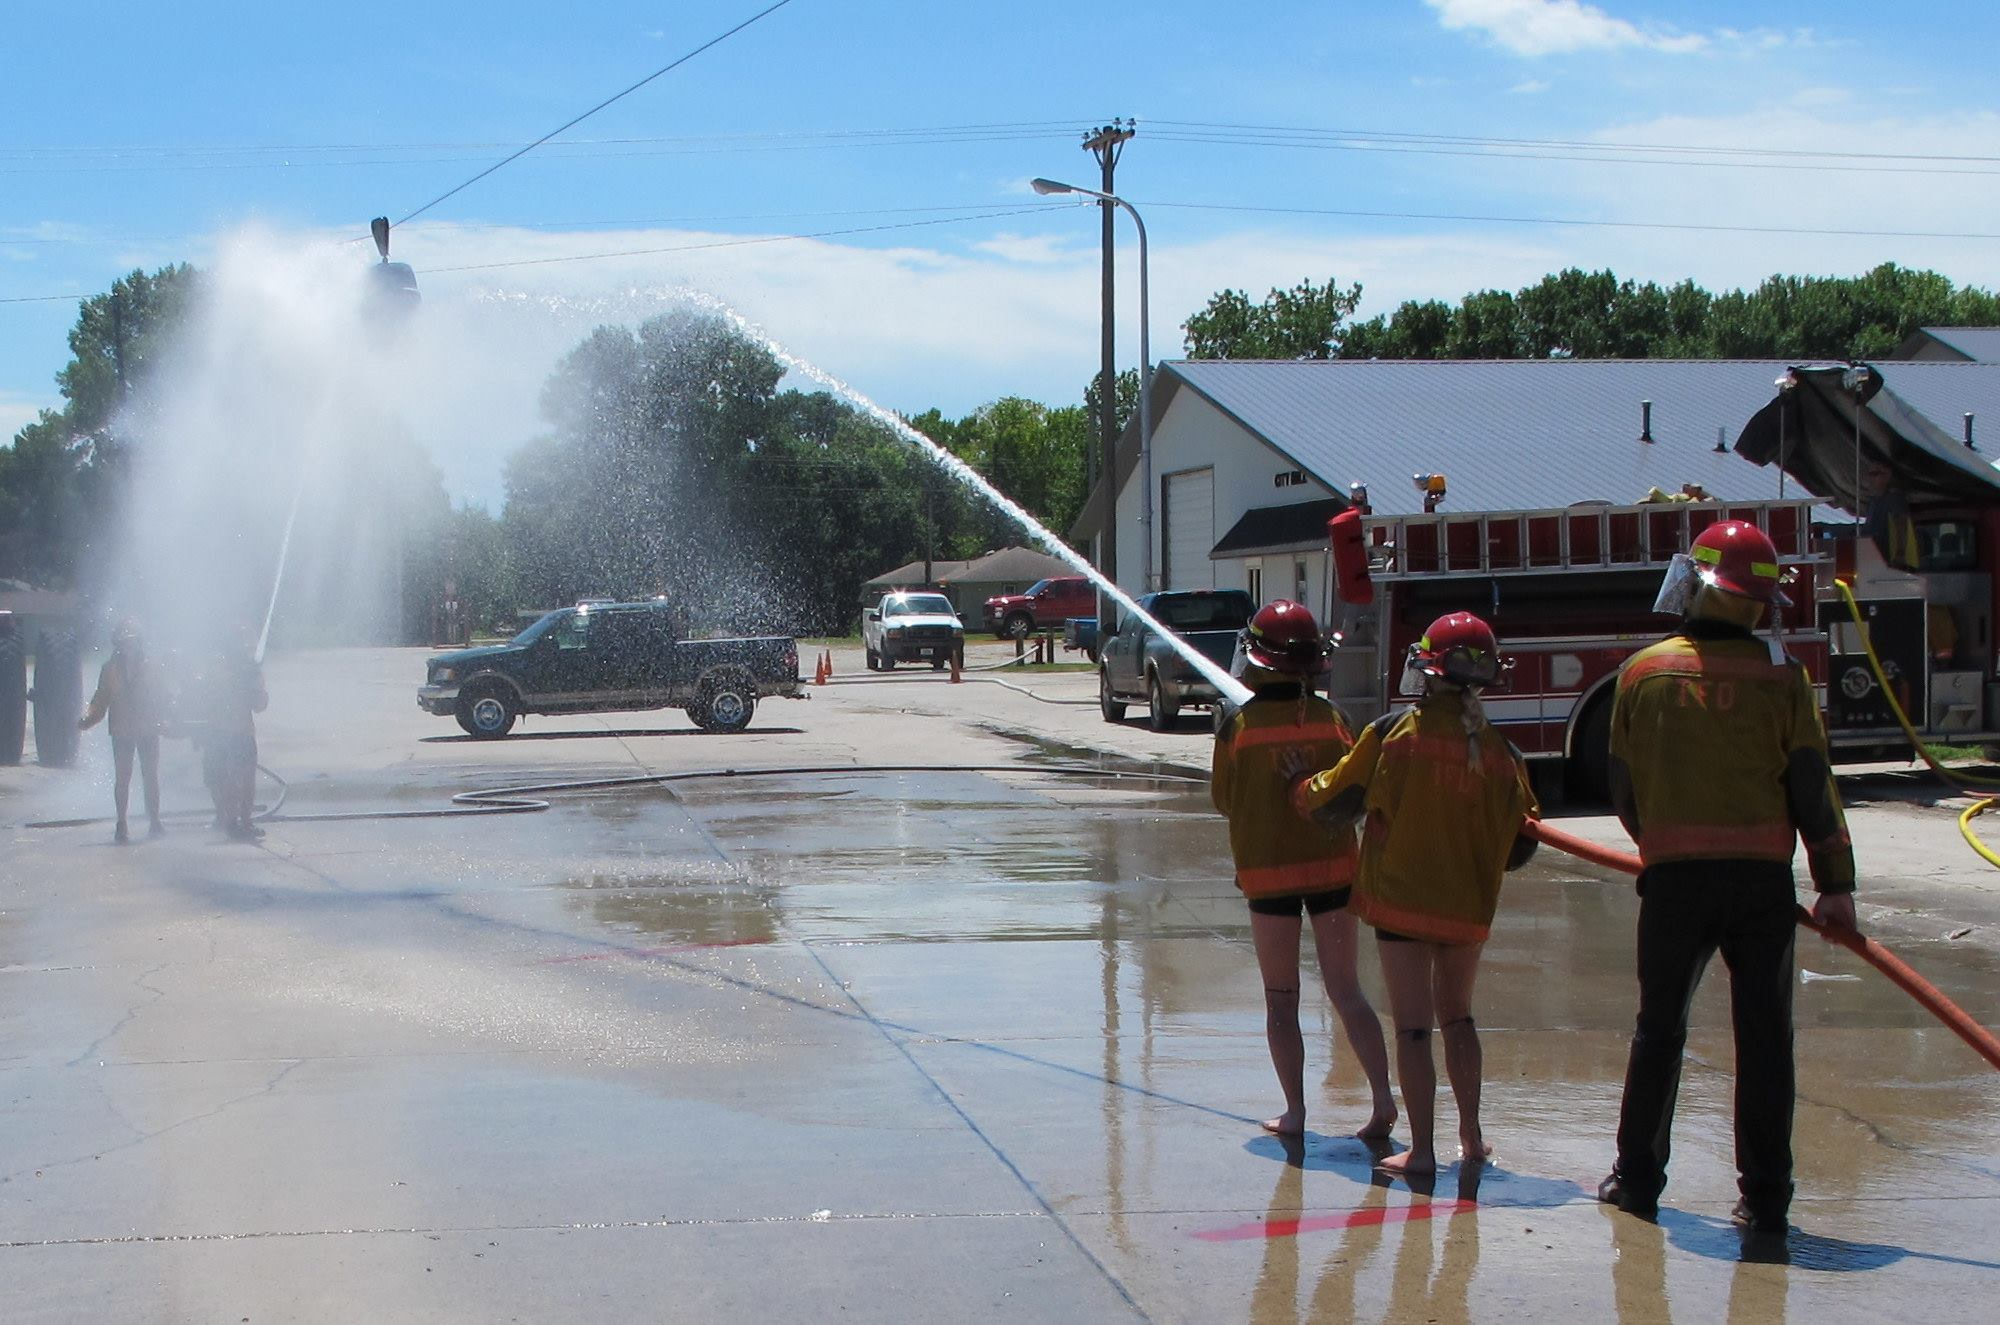 Fire departments set up hose battles for blasting a beer keg down a cable.